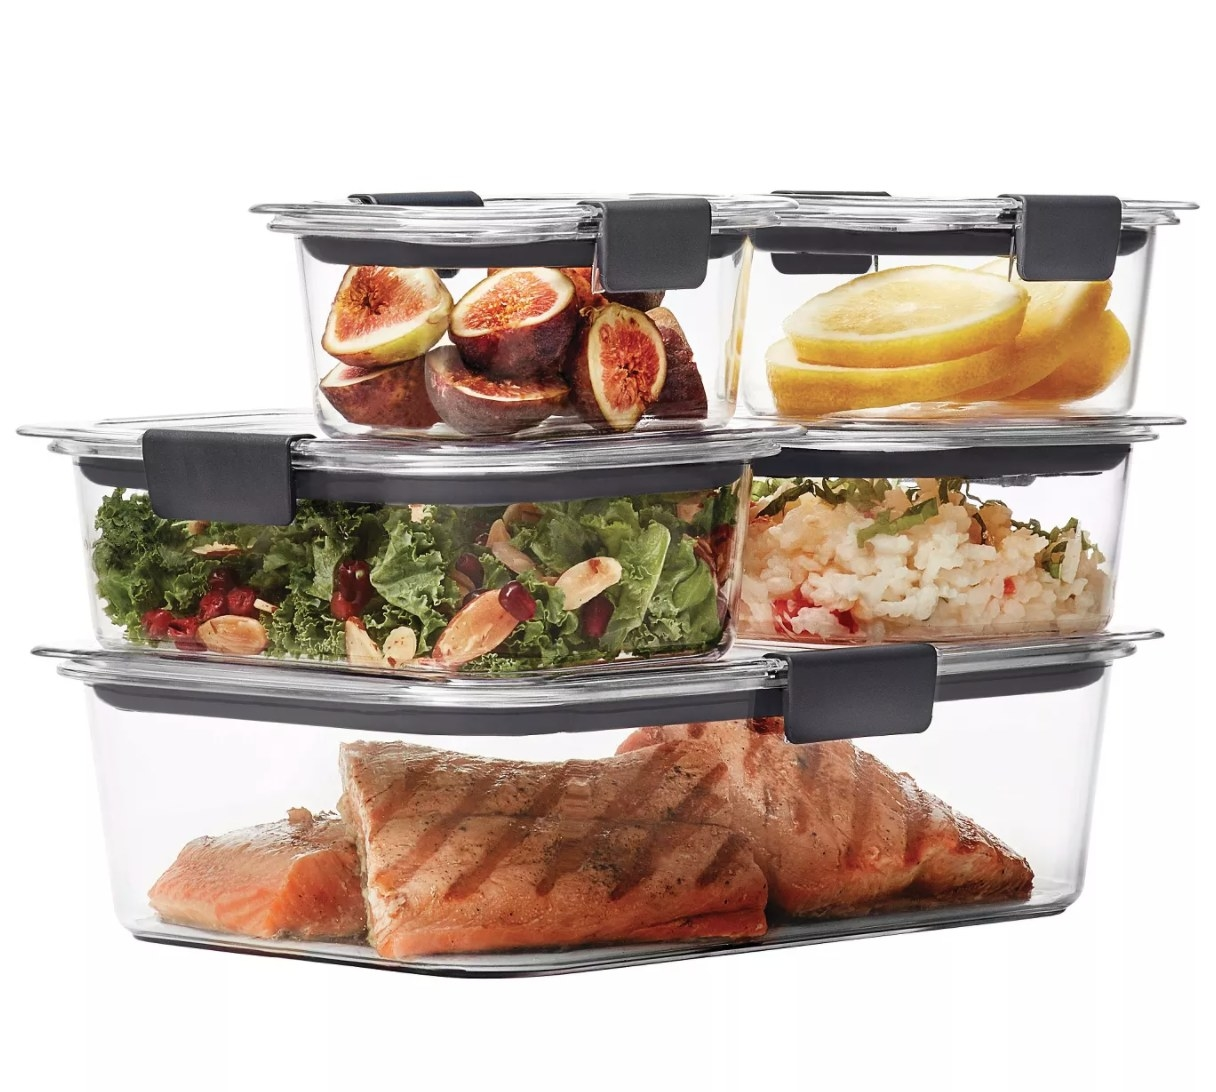 The clear food storage containers